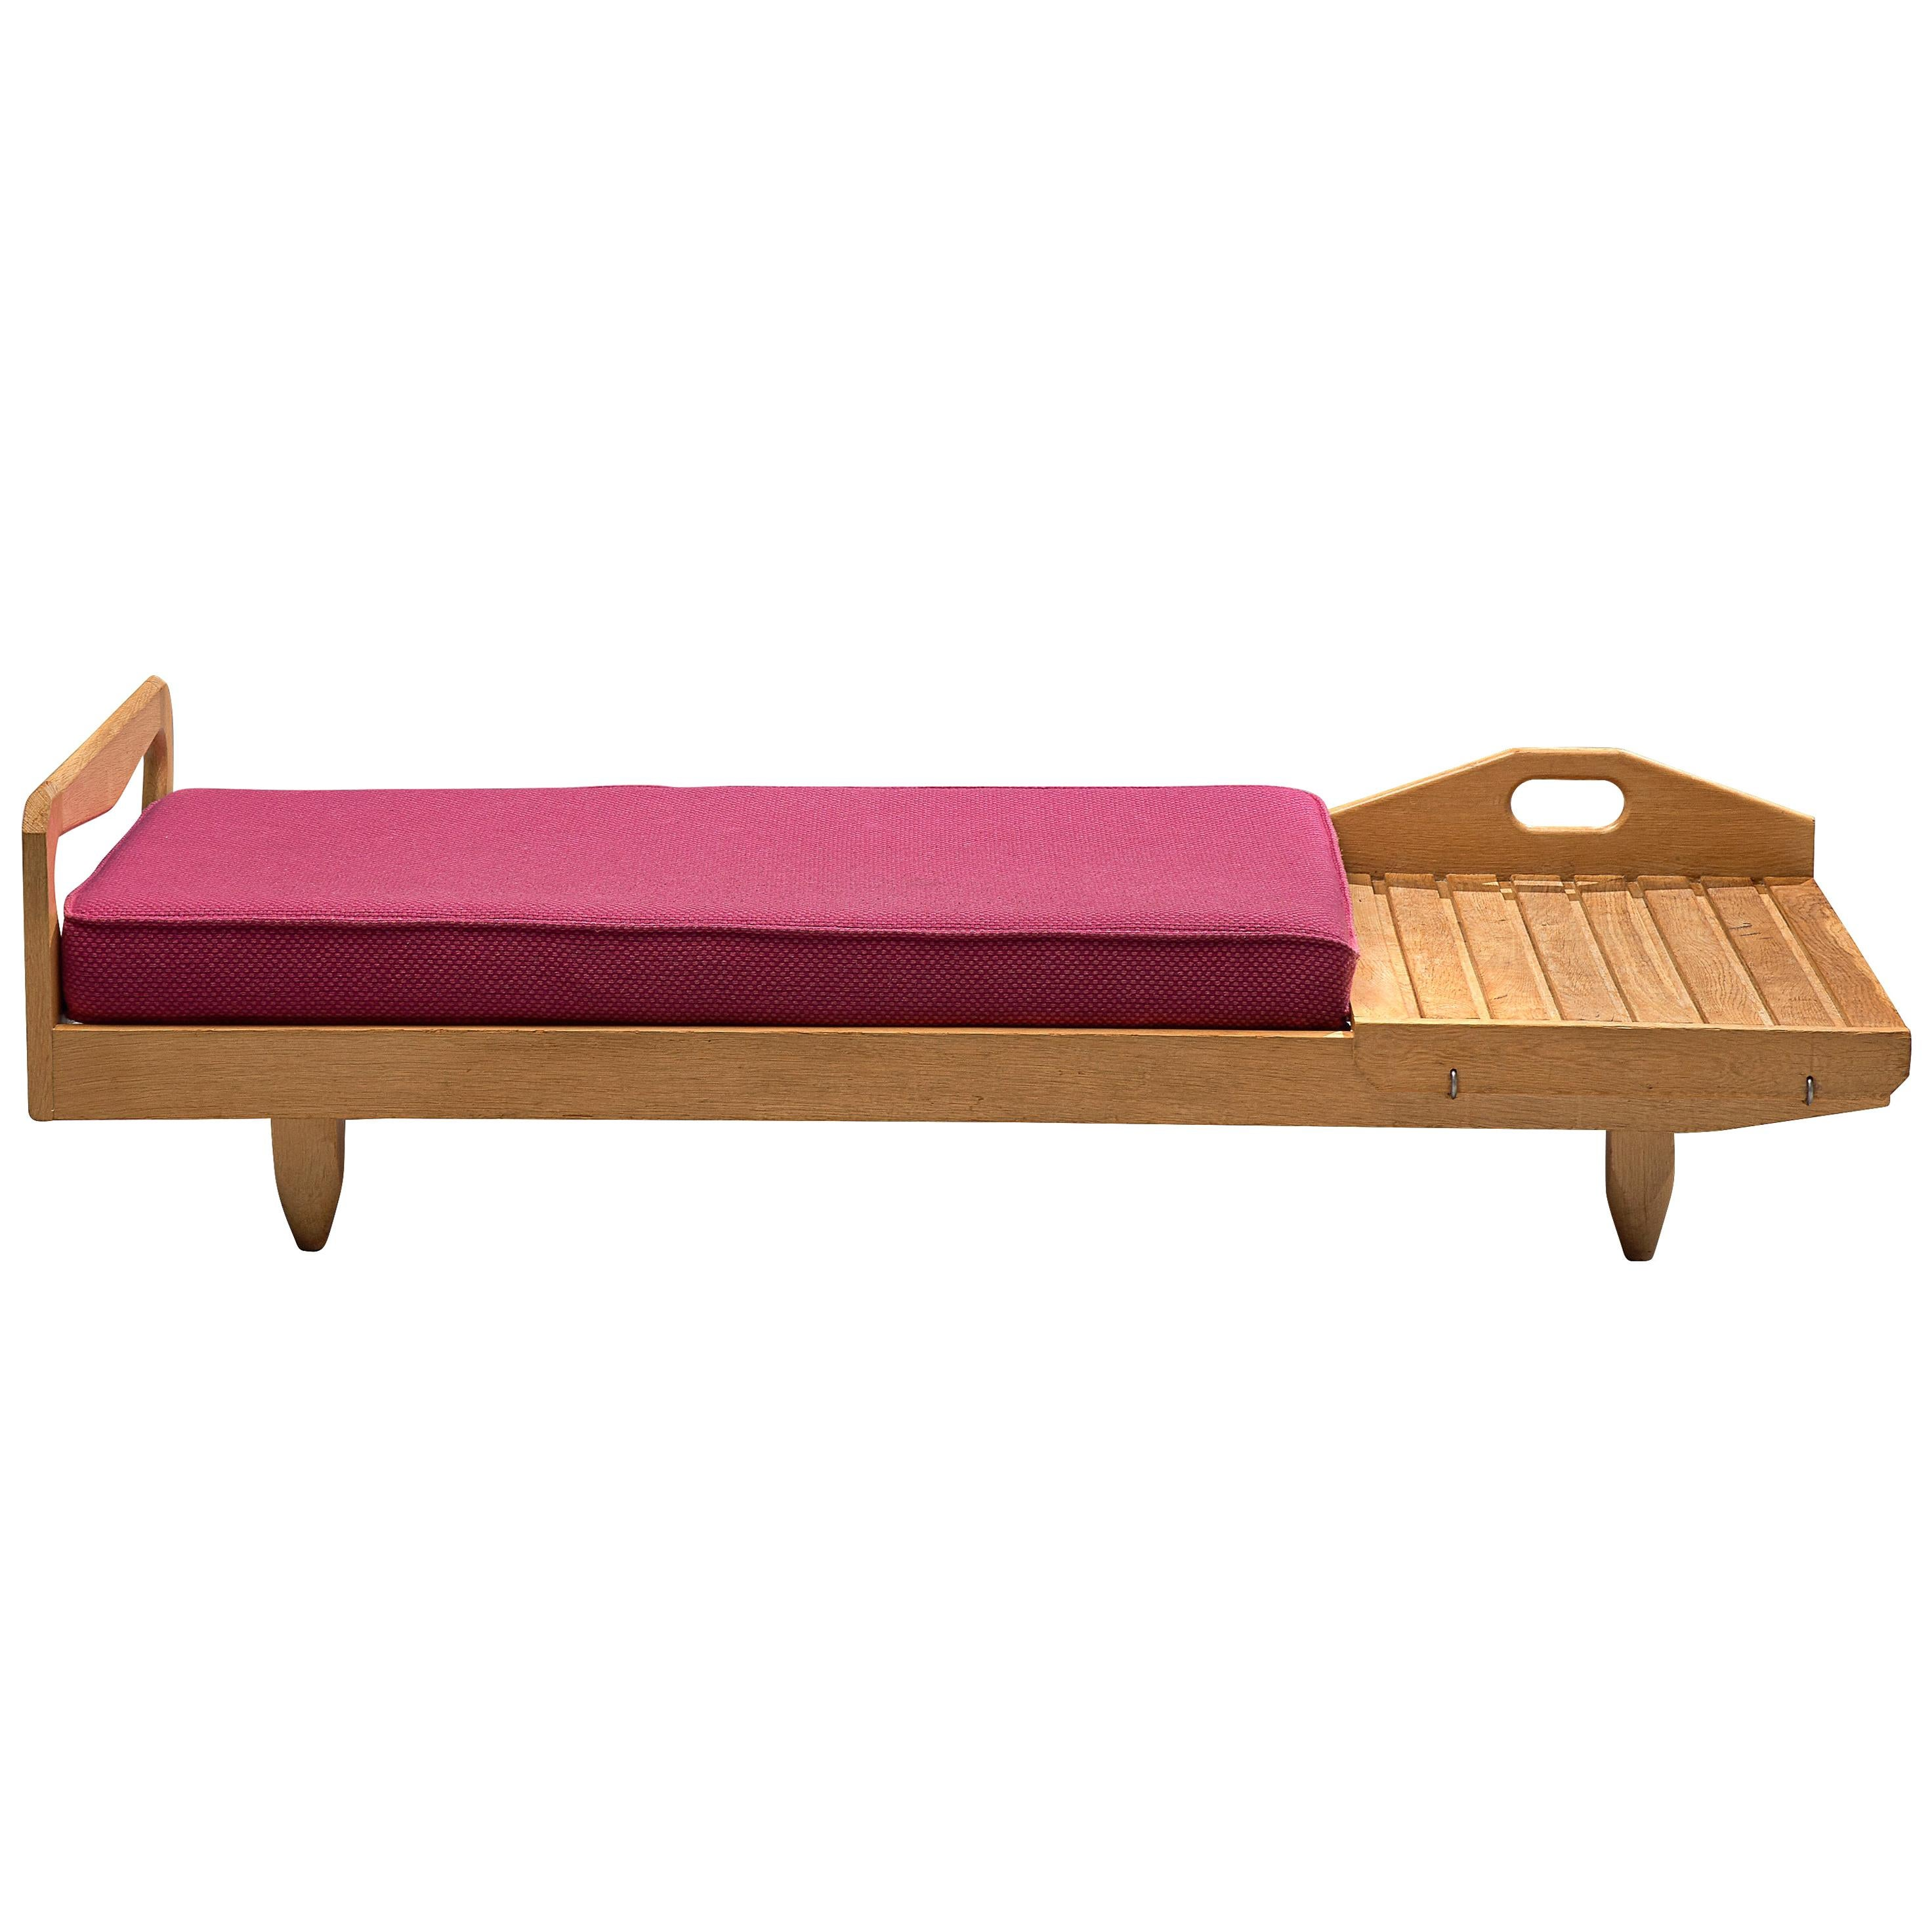 Guillerme et Chambron Daybed or Bench with Side Table in Oak and Fabric